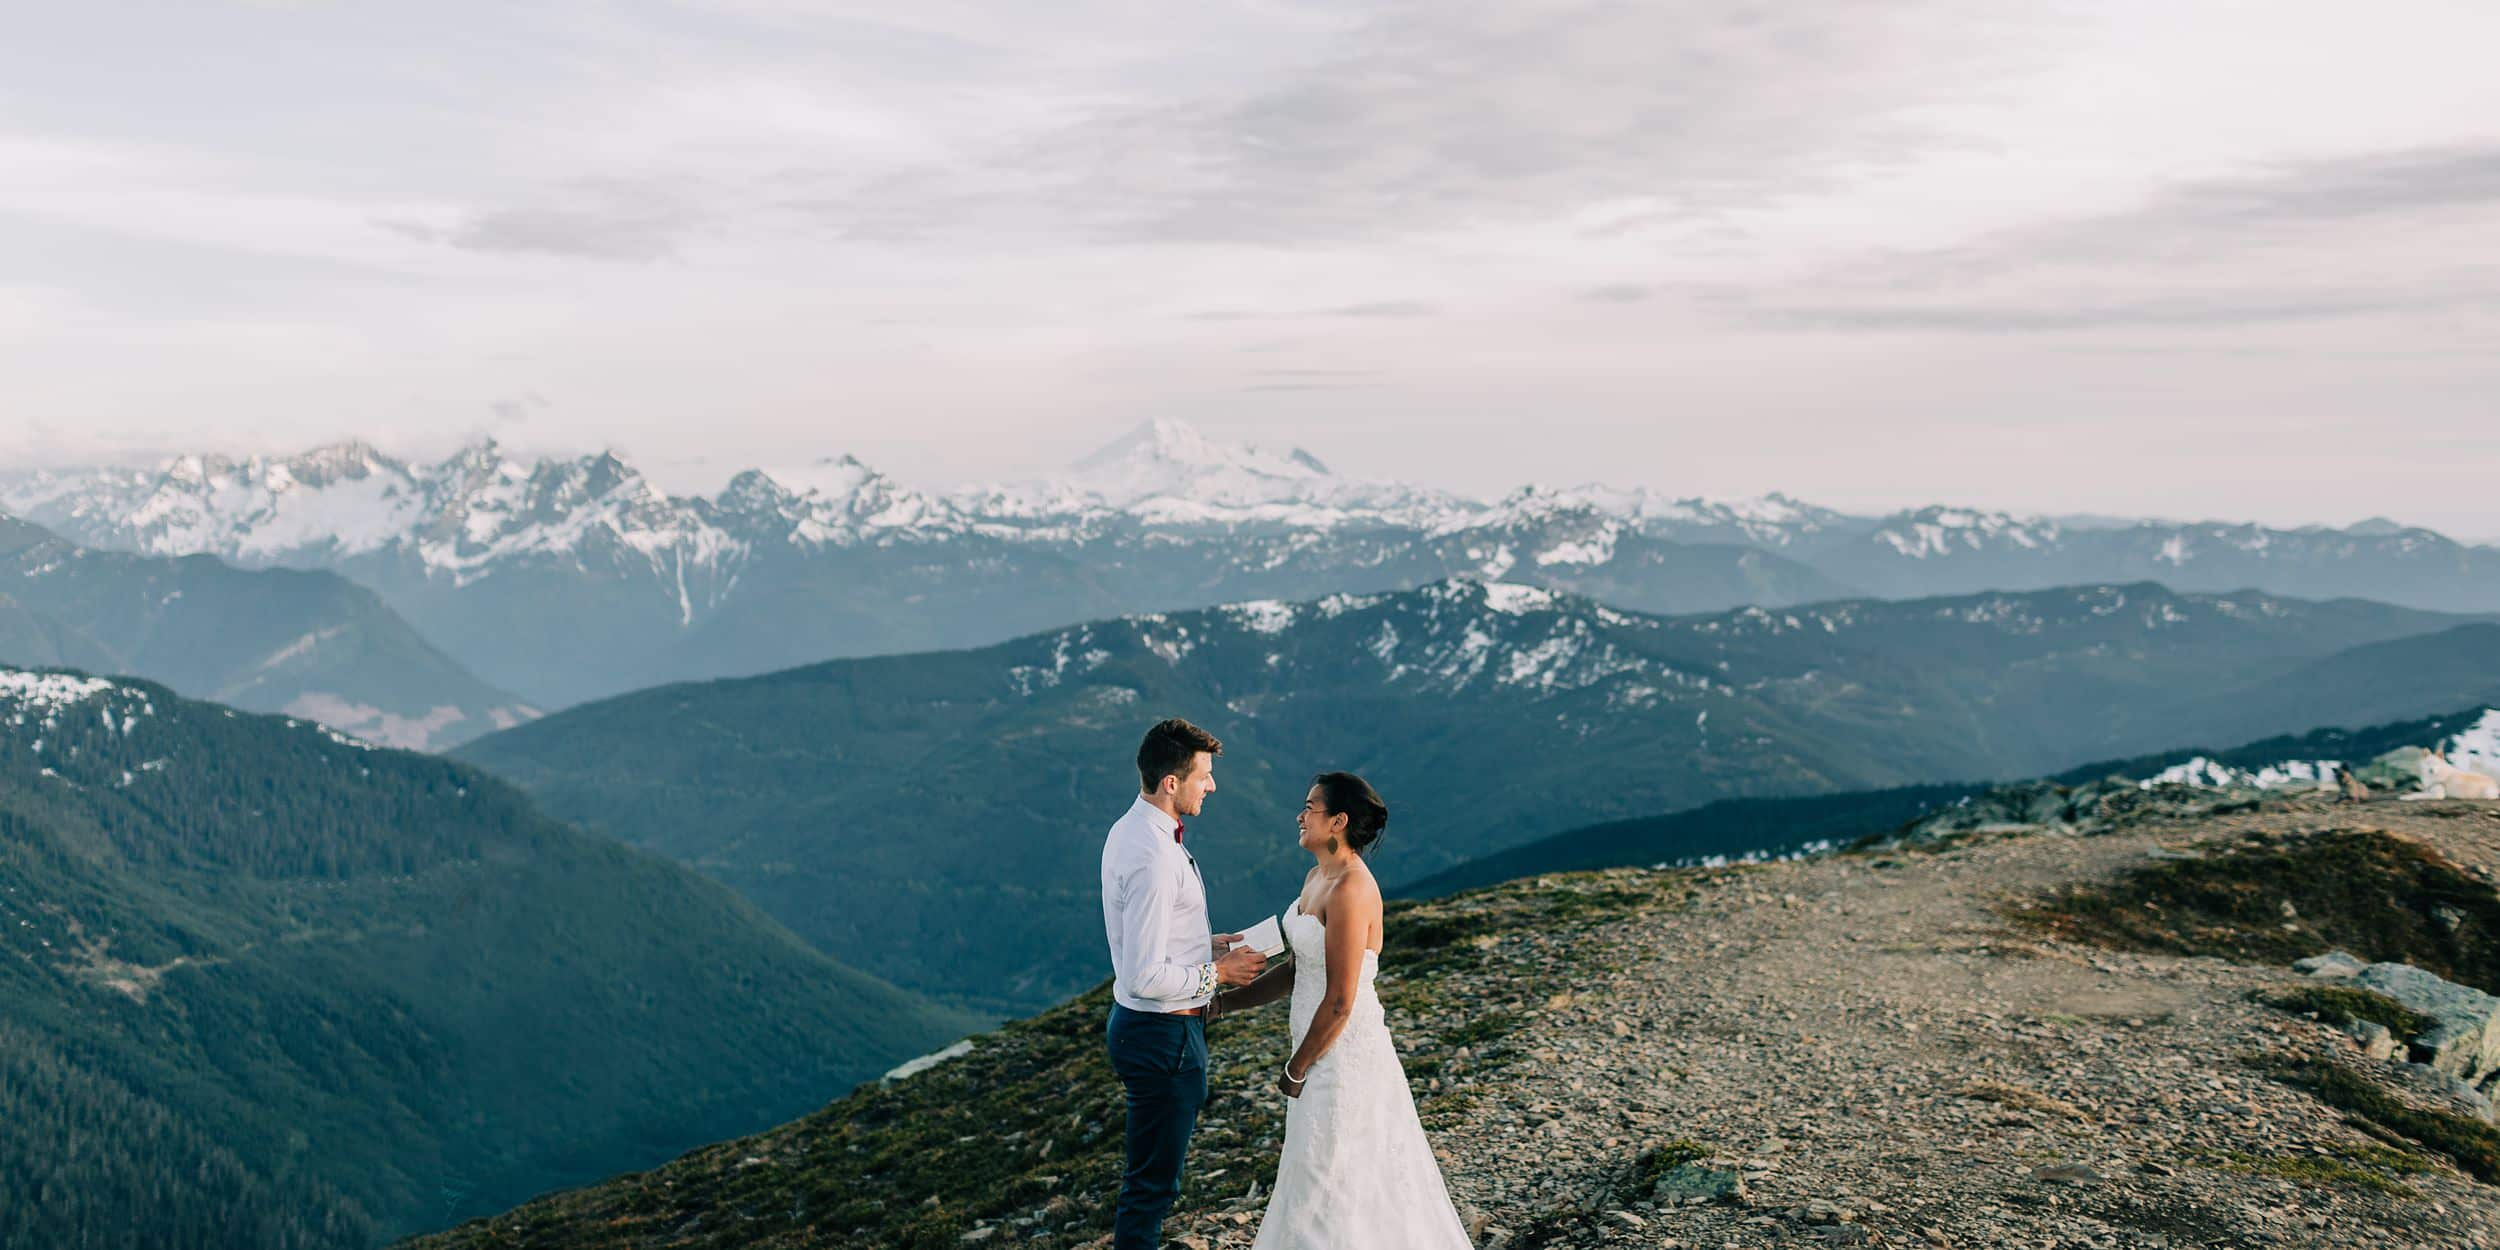 Vancouver wedding videographer - Couple standing on top of mountain reading wedding vows to each other